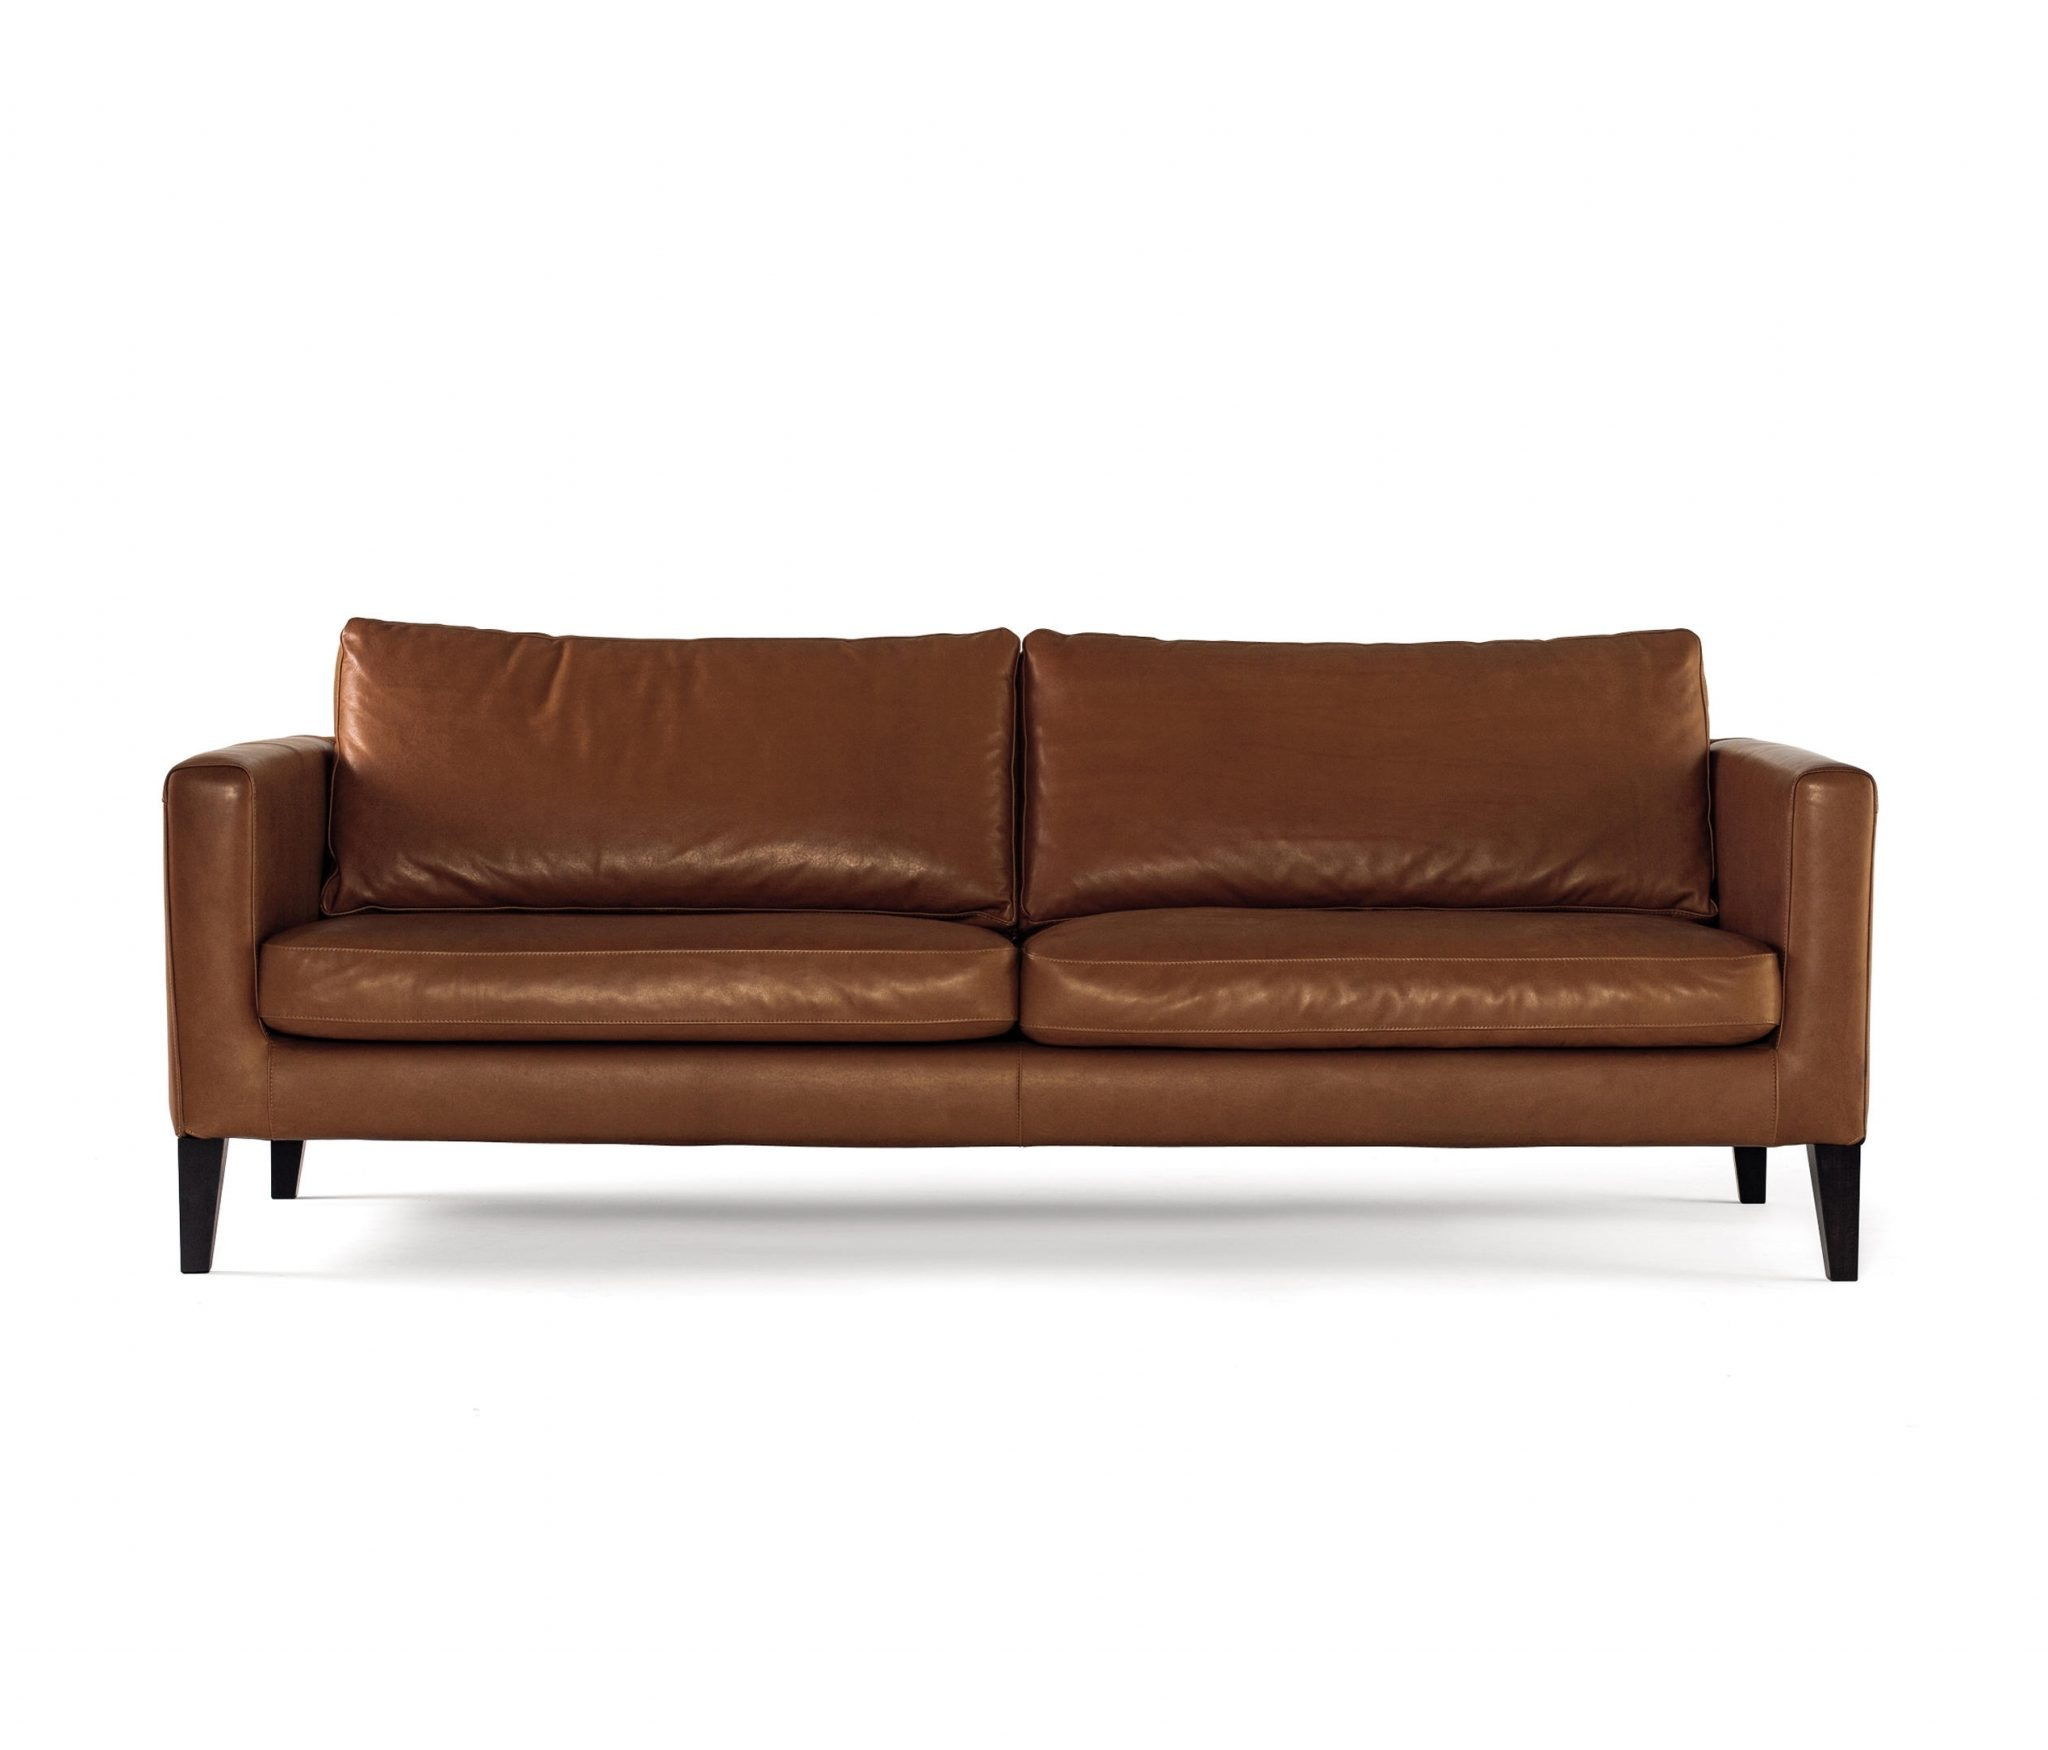 Epic Sofa En Ingles 15 For Modern Sofa Ideas with Sofa En Ingles